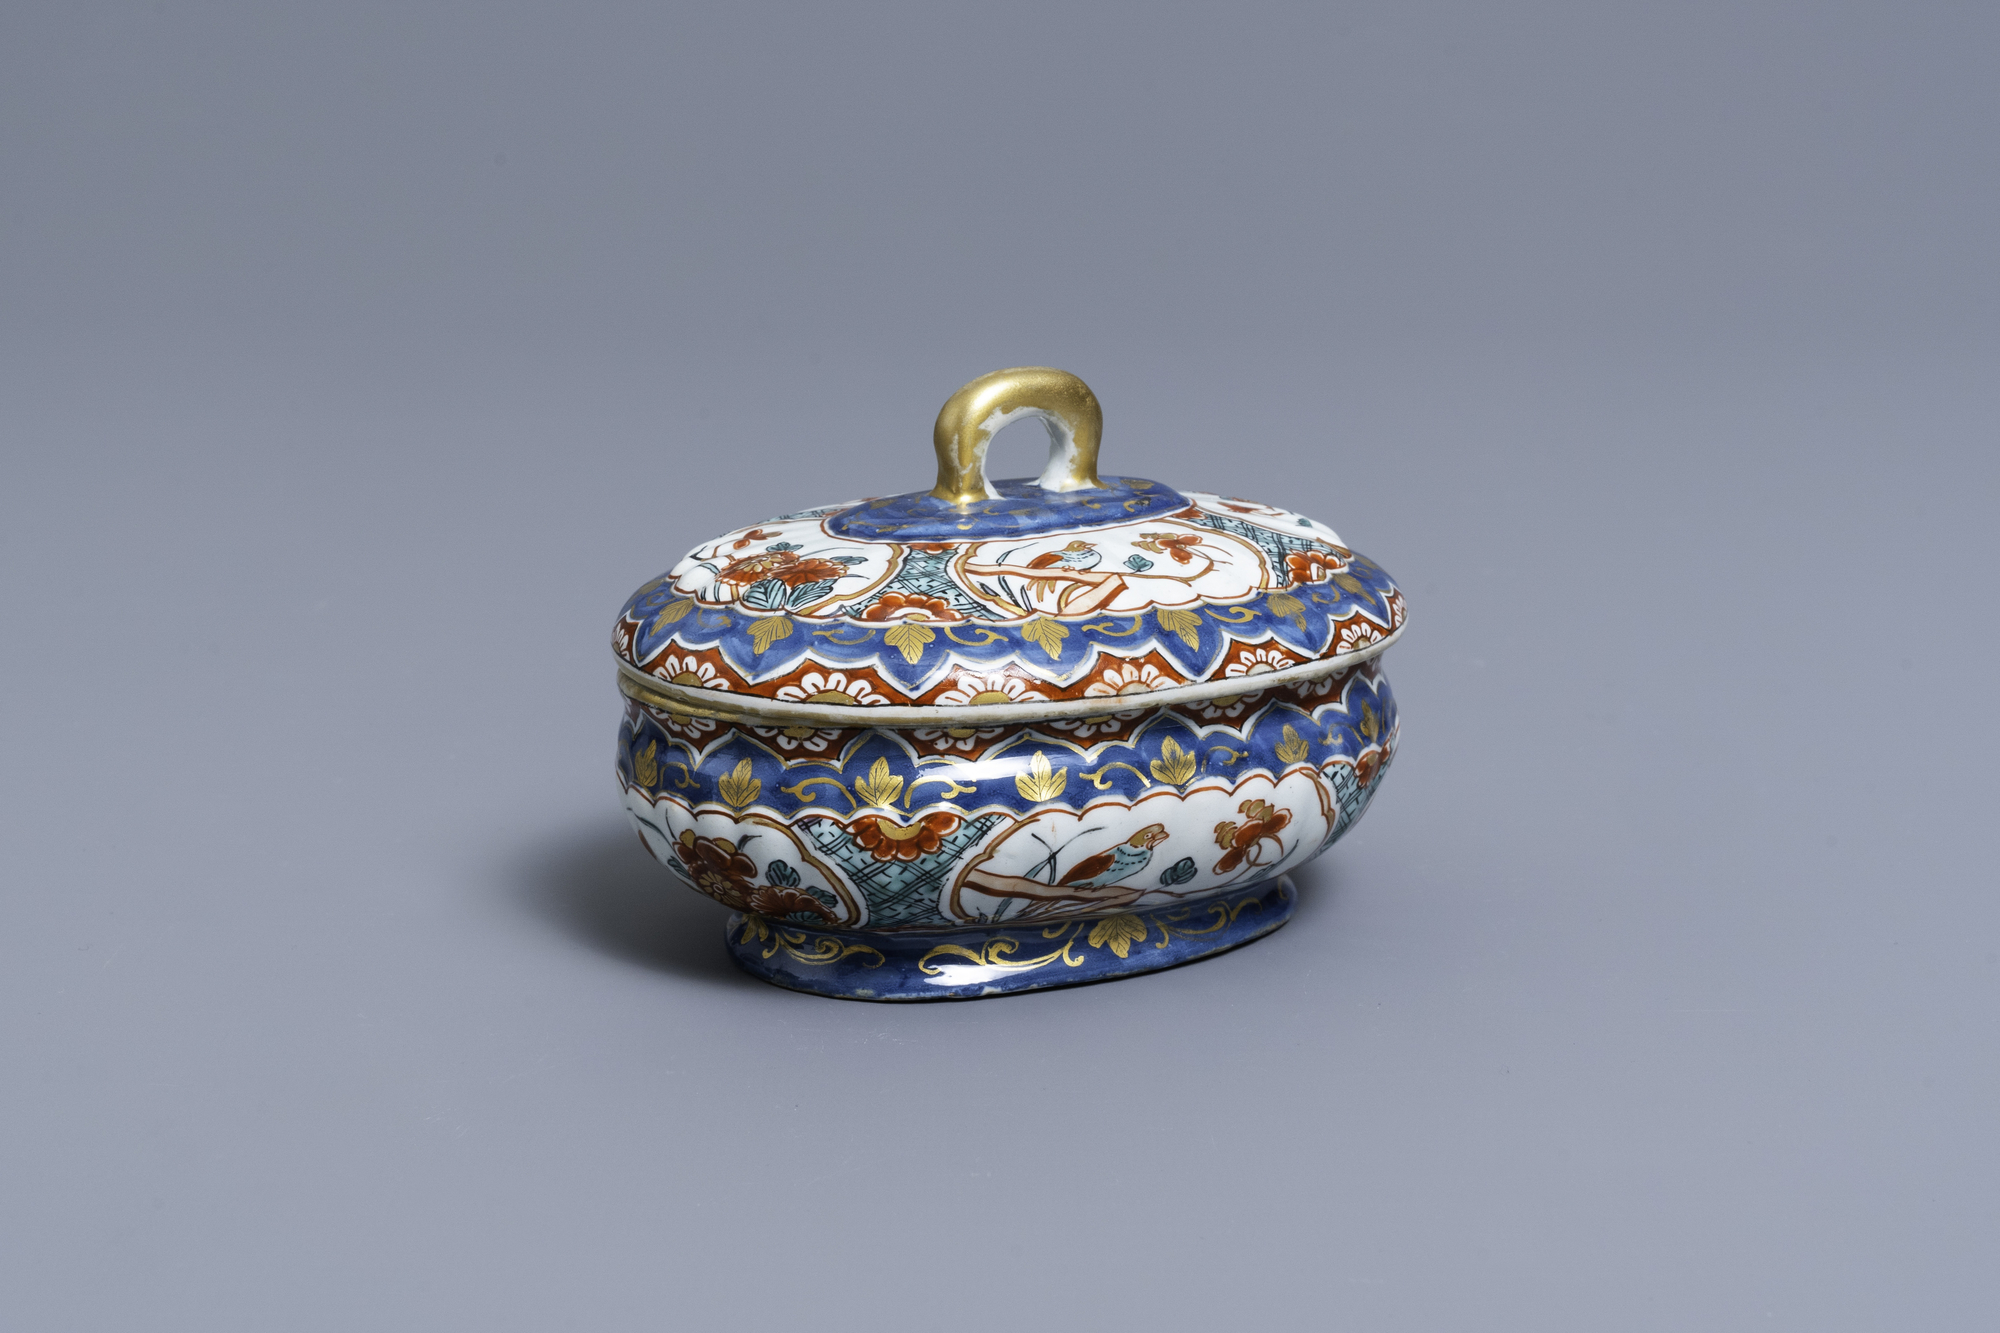 A polychrome and gilded Dutch Delft spice box and cover, early 18th C.